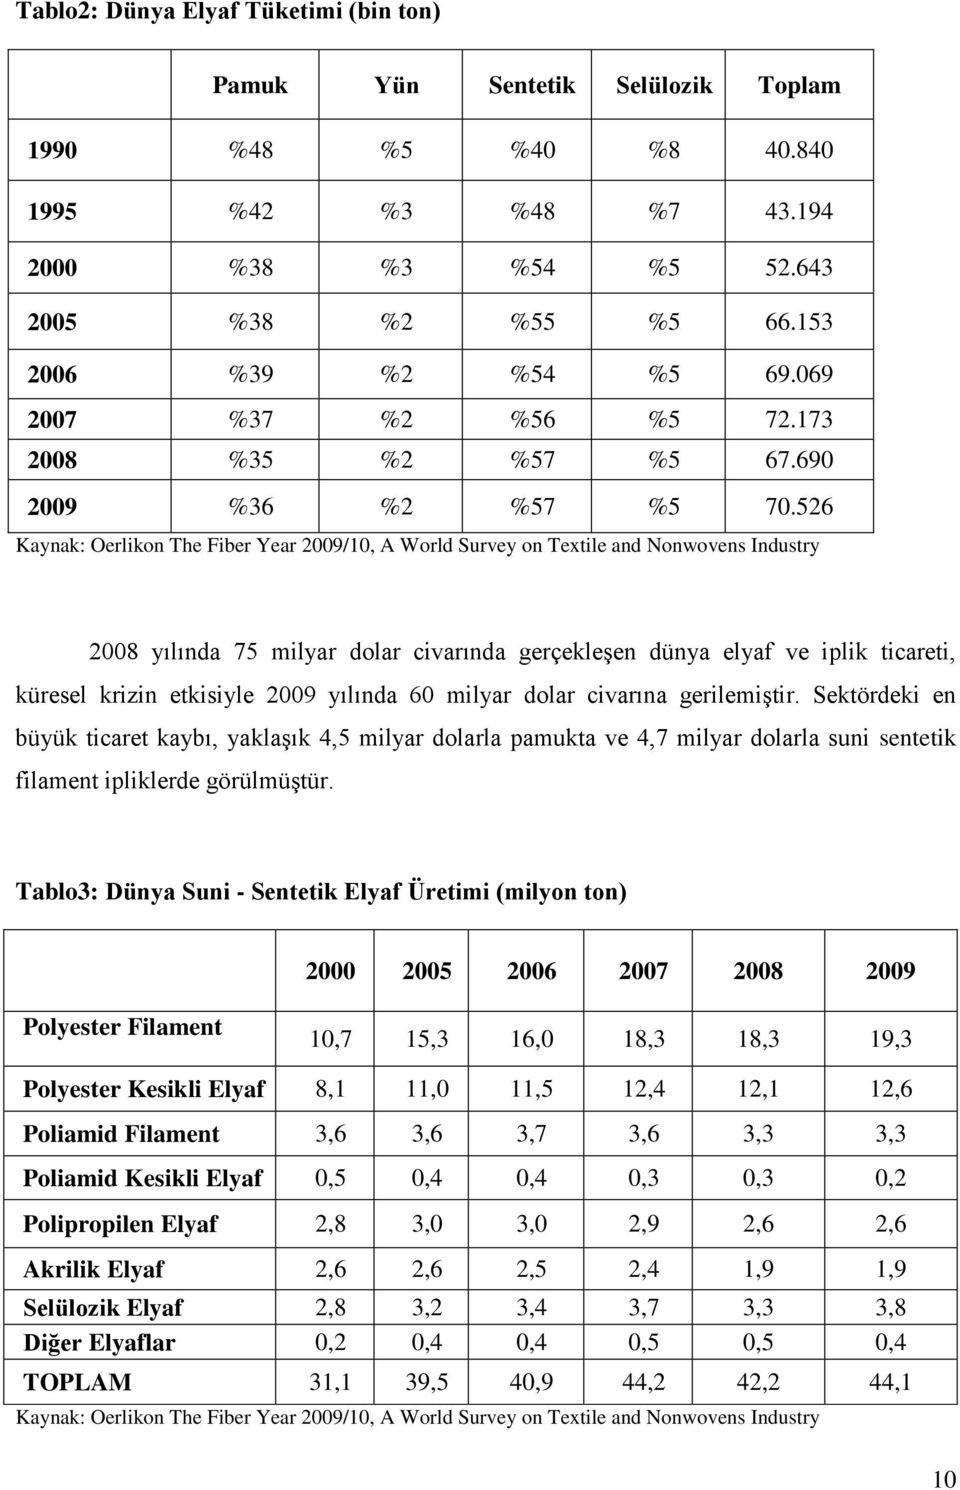 526 Kaynak: Oerlikon The Fiber Year 2009/10, A World Survey on Textile and Nonwovens Industry 2008 yılında 75 milyar dolar civarında gerçekleşen dünya elyaf ve iplik ticareti, küresel krizin